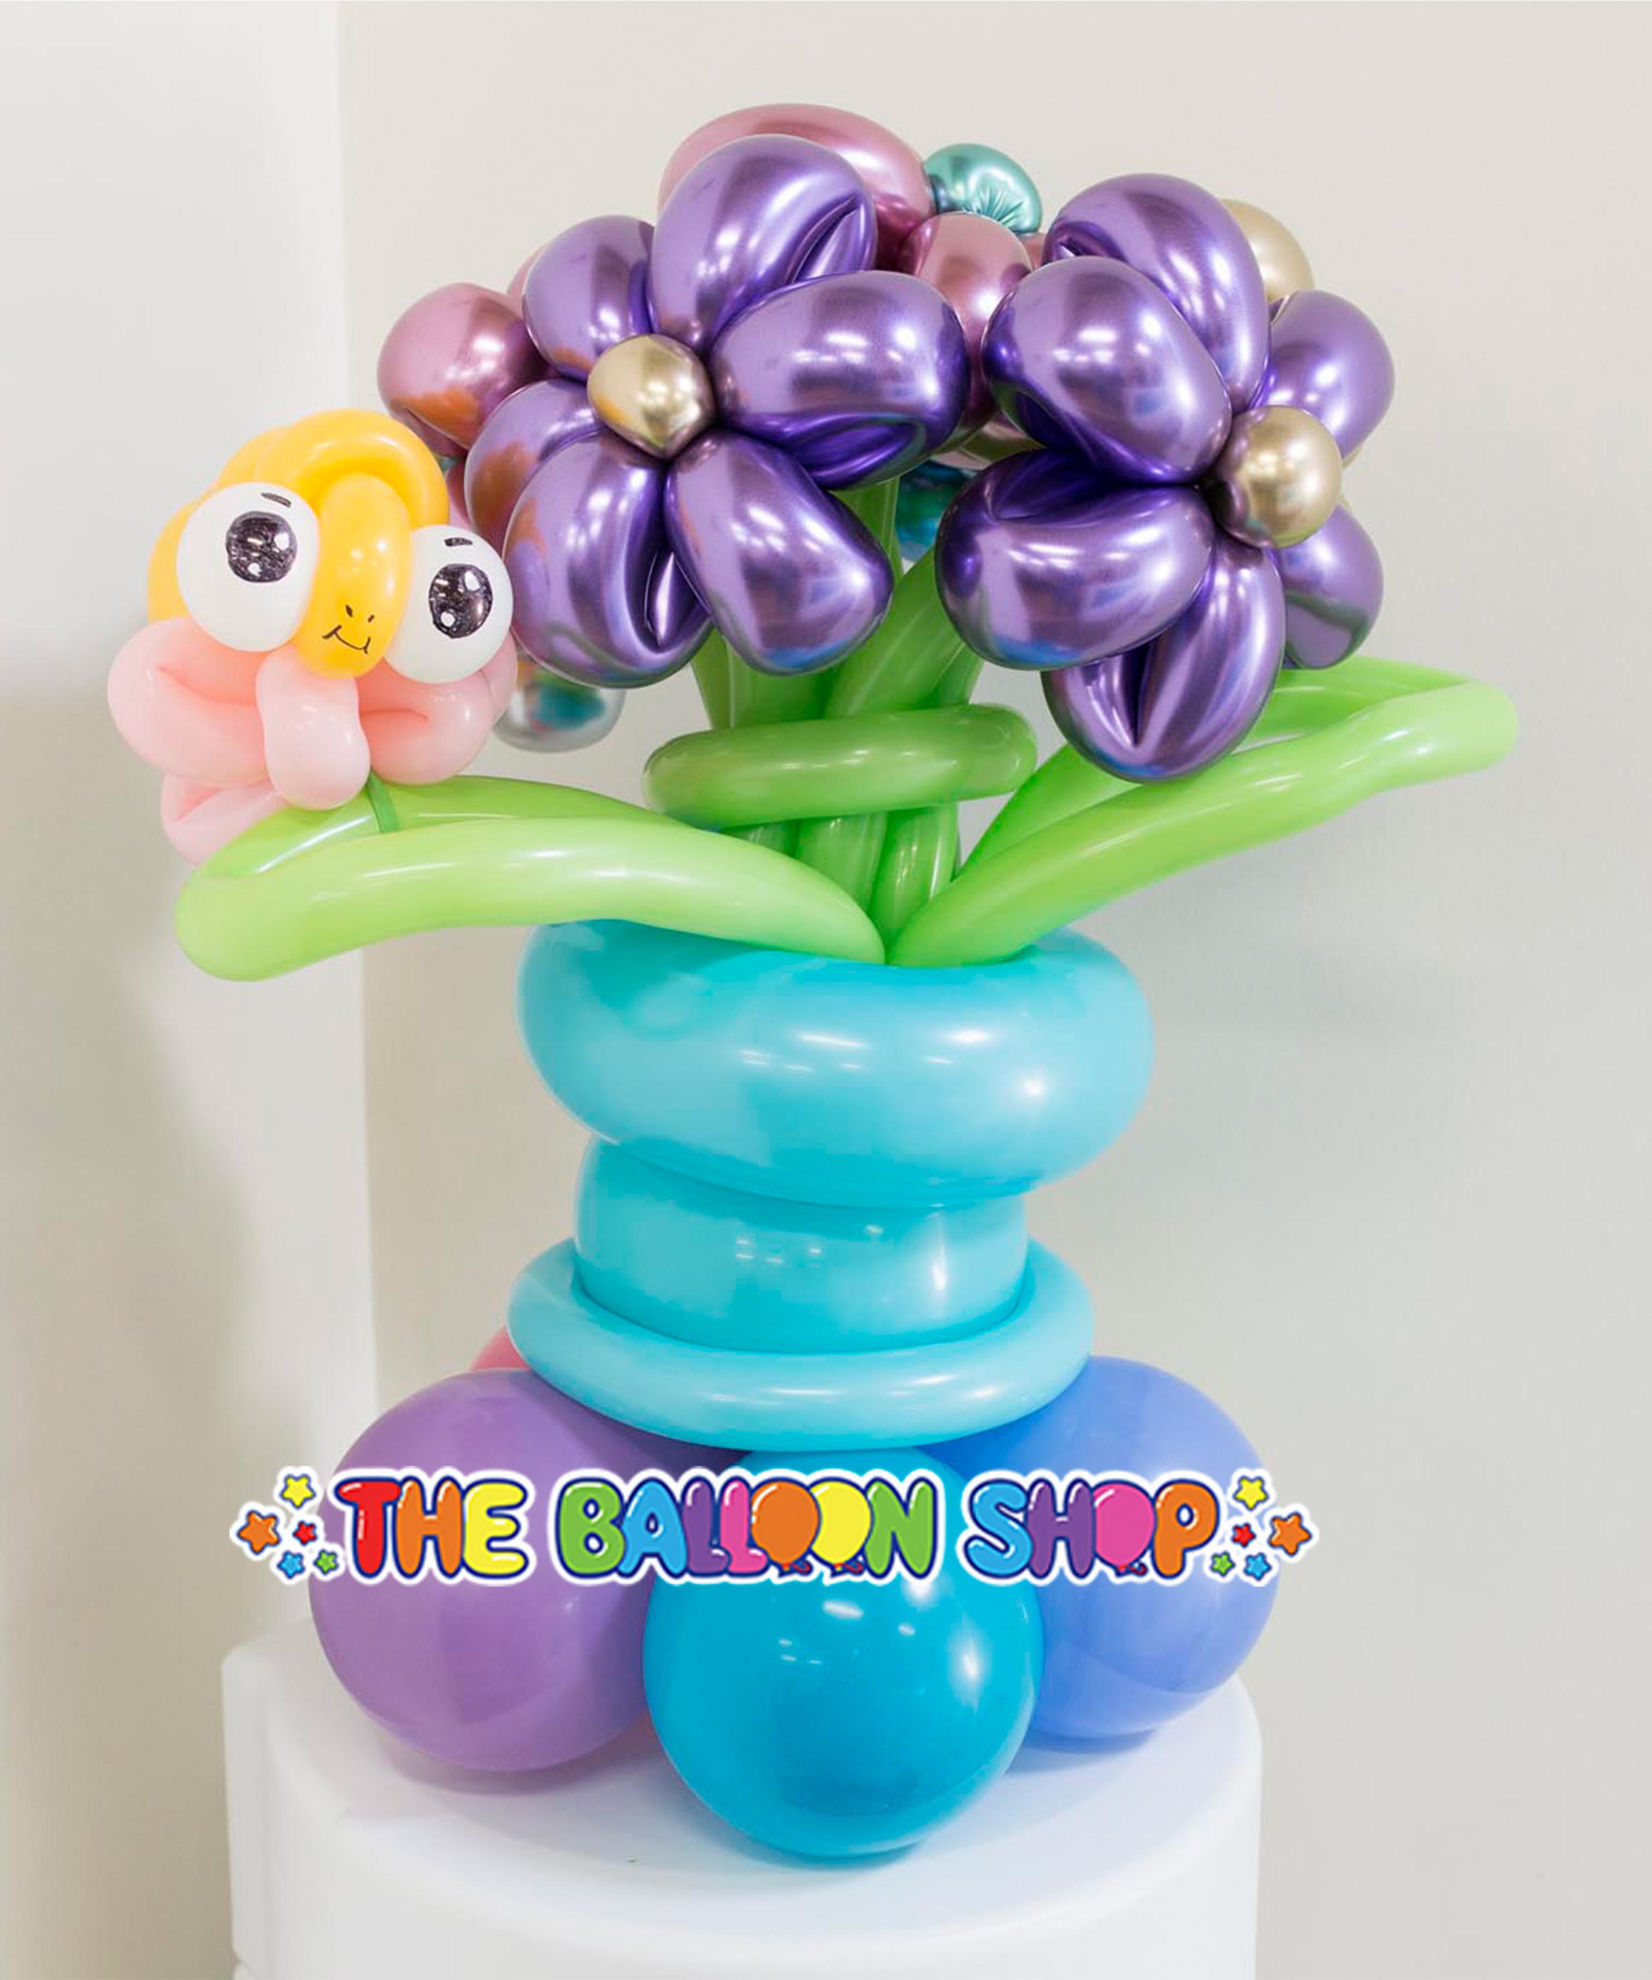 Picture of 5 Flower Balloon Bouquet with Caterpillar - Balloon Centerpiece